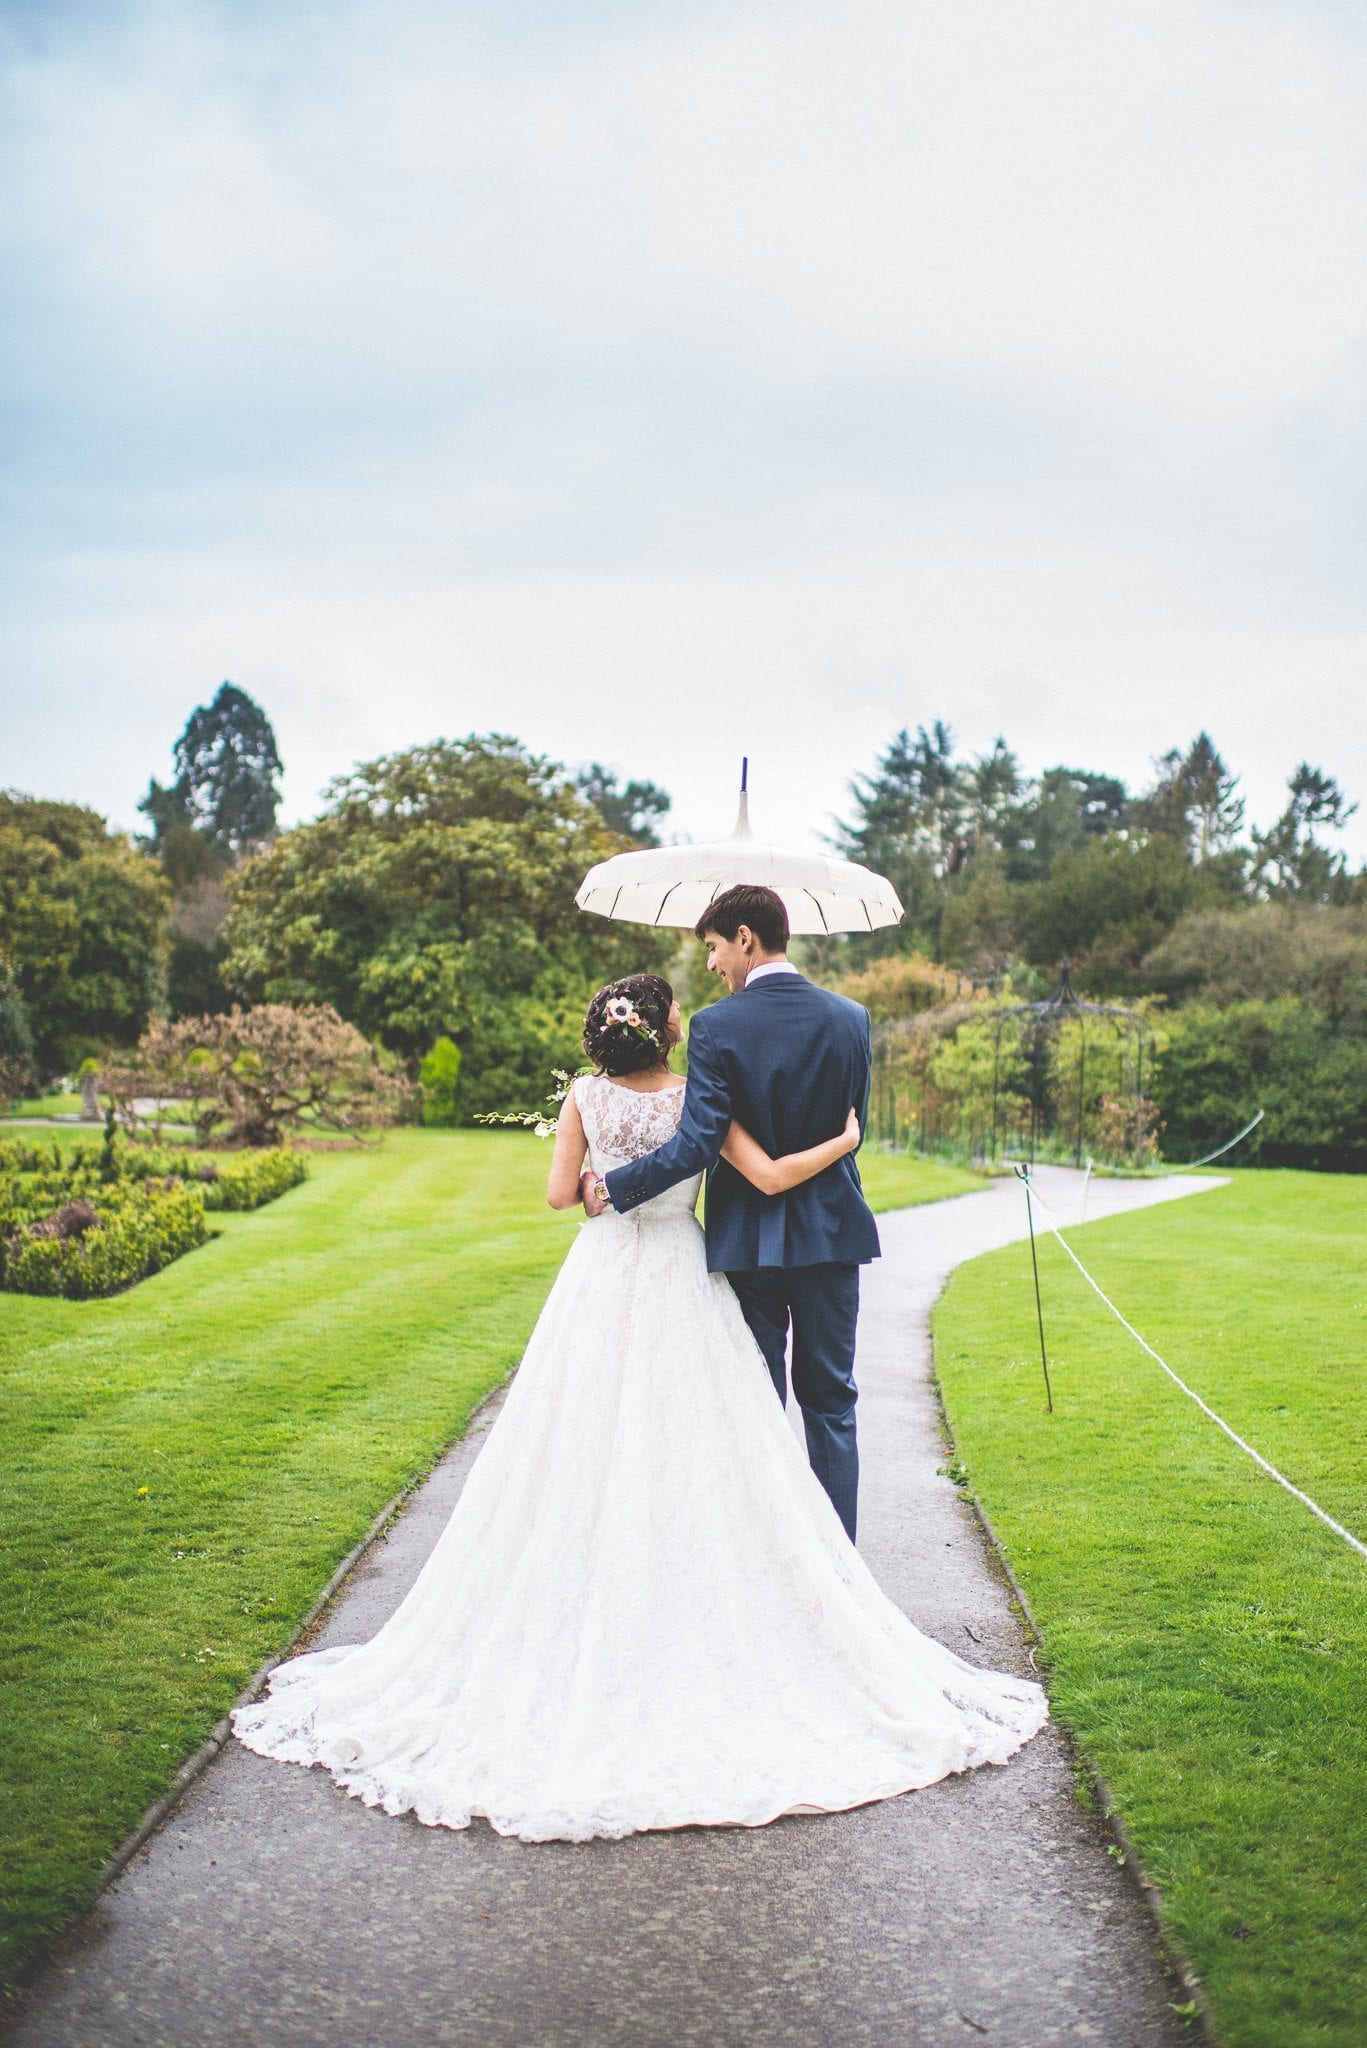 The couple walk down a path in the grounds of Nonsuch Mansion. Jasmin's dress spreads out behind her in a lace train, and Andy holds a white parasol over their heads